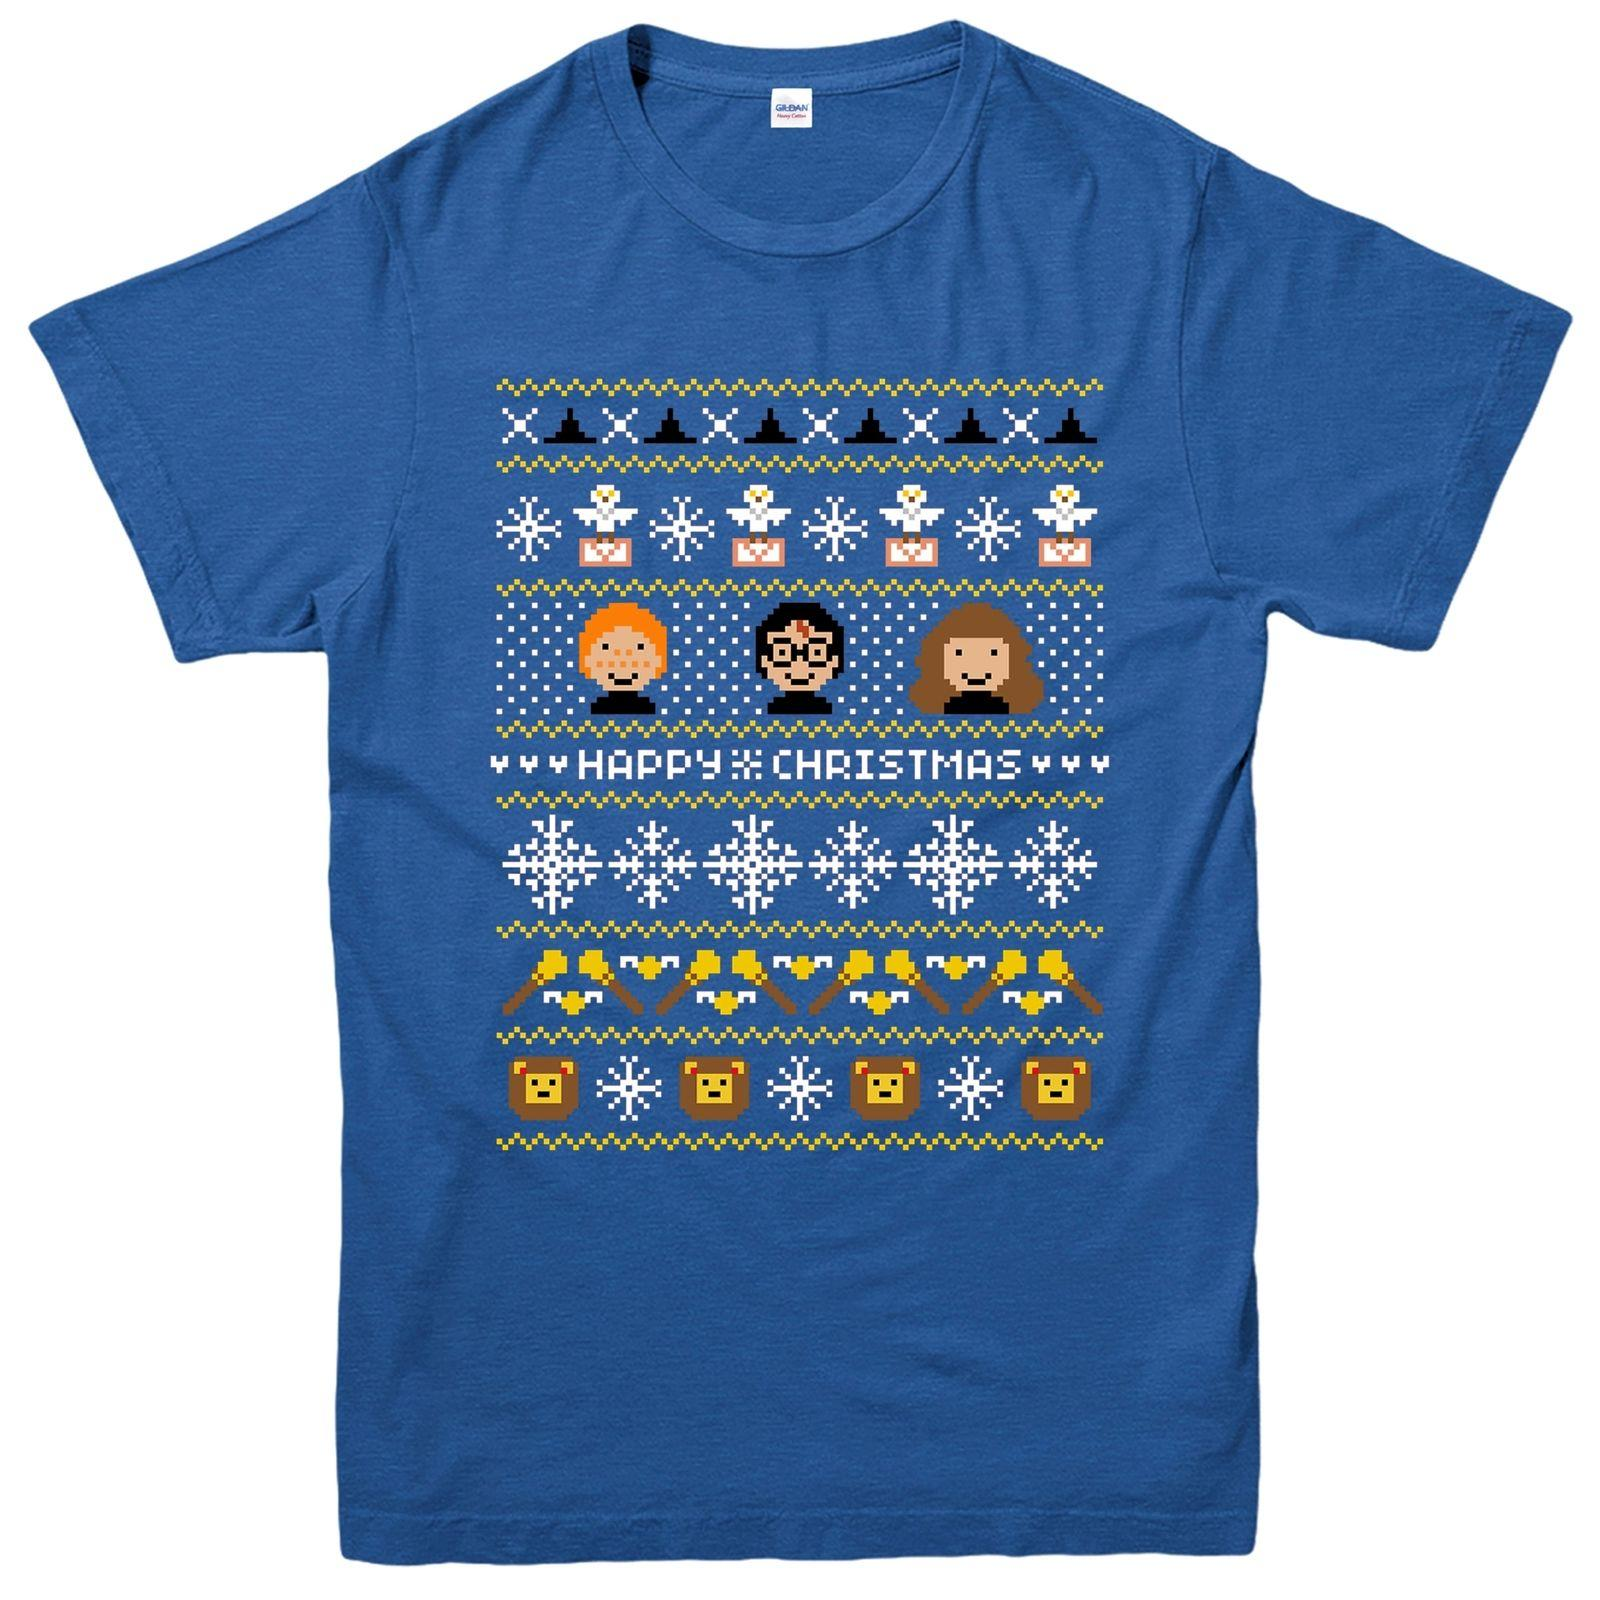 Harry Potter Christmas Shirt.Details Zu Harry Potter Christmas T Shirt Hermione Ron Xmas Festive Adult Kids Tee Top Funny Free Shipping Unisex